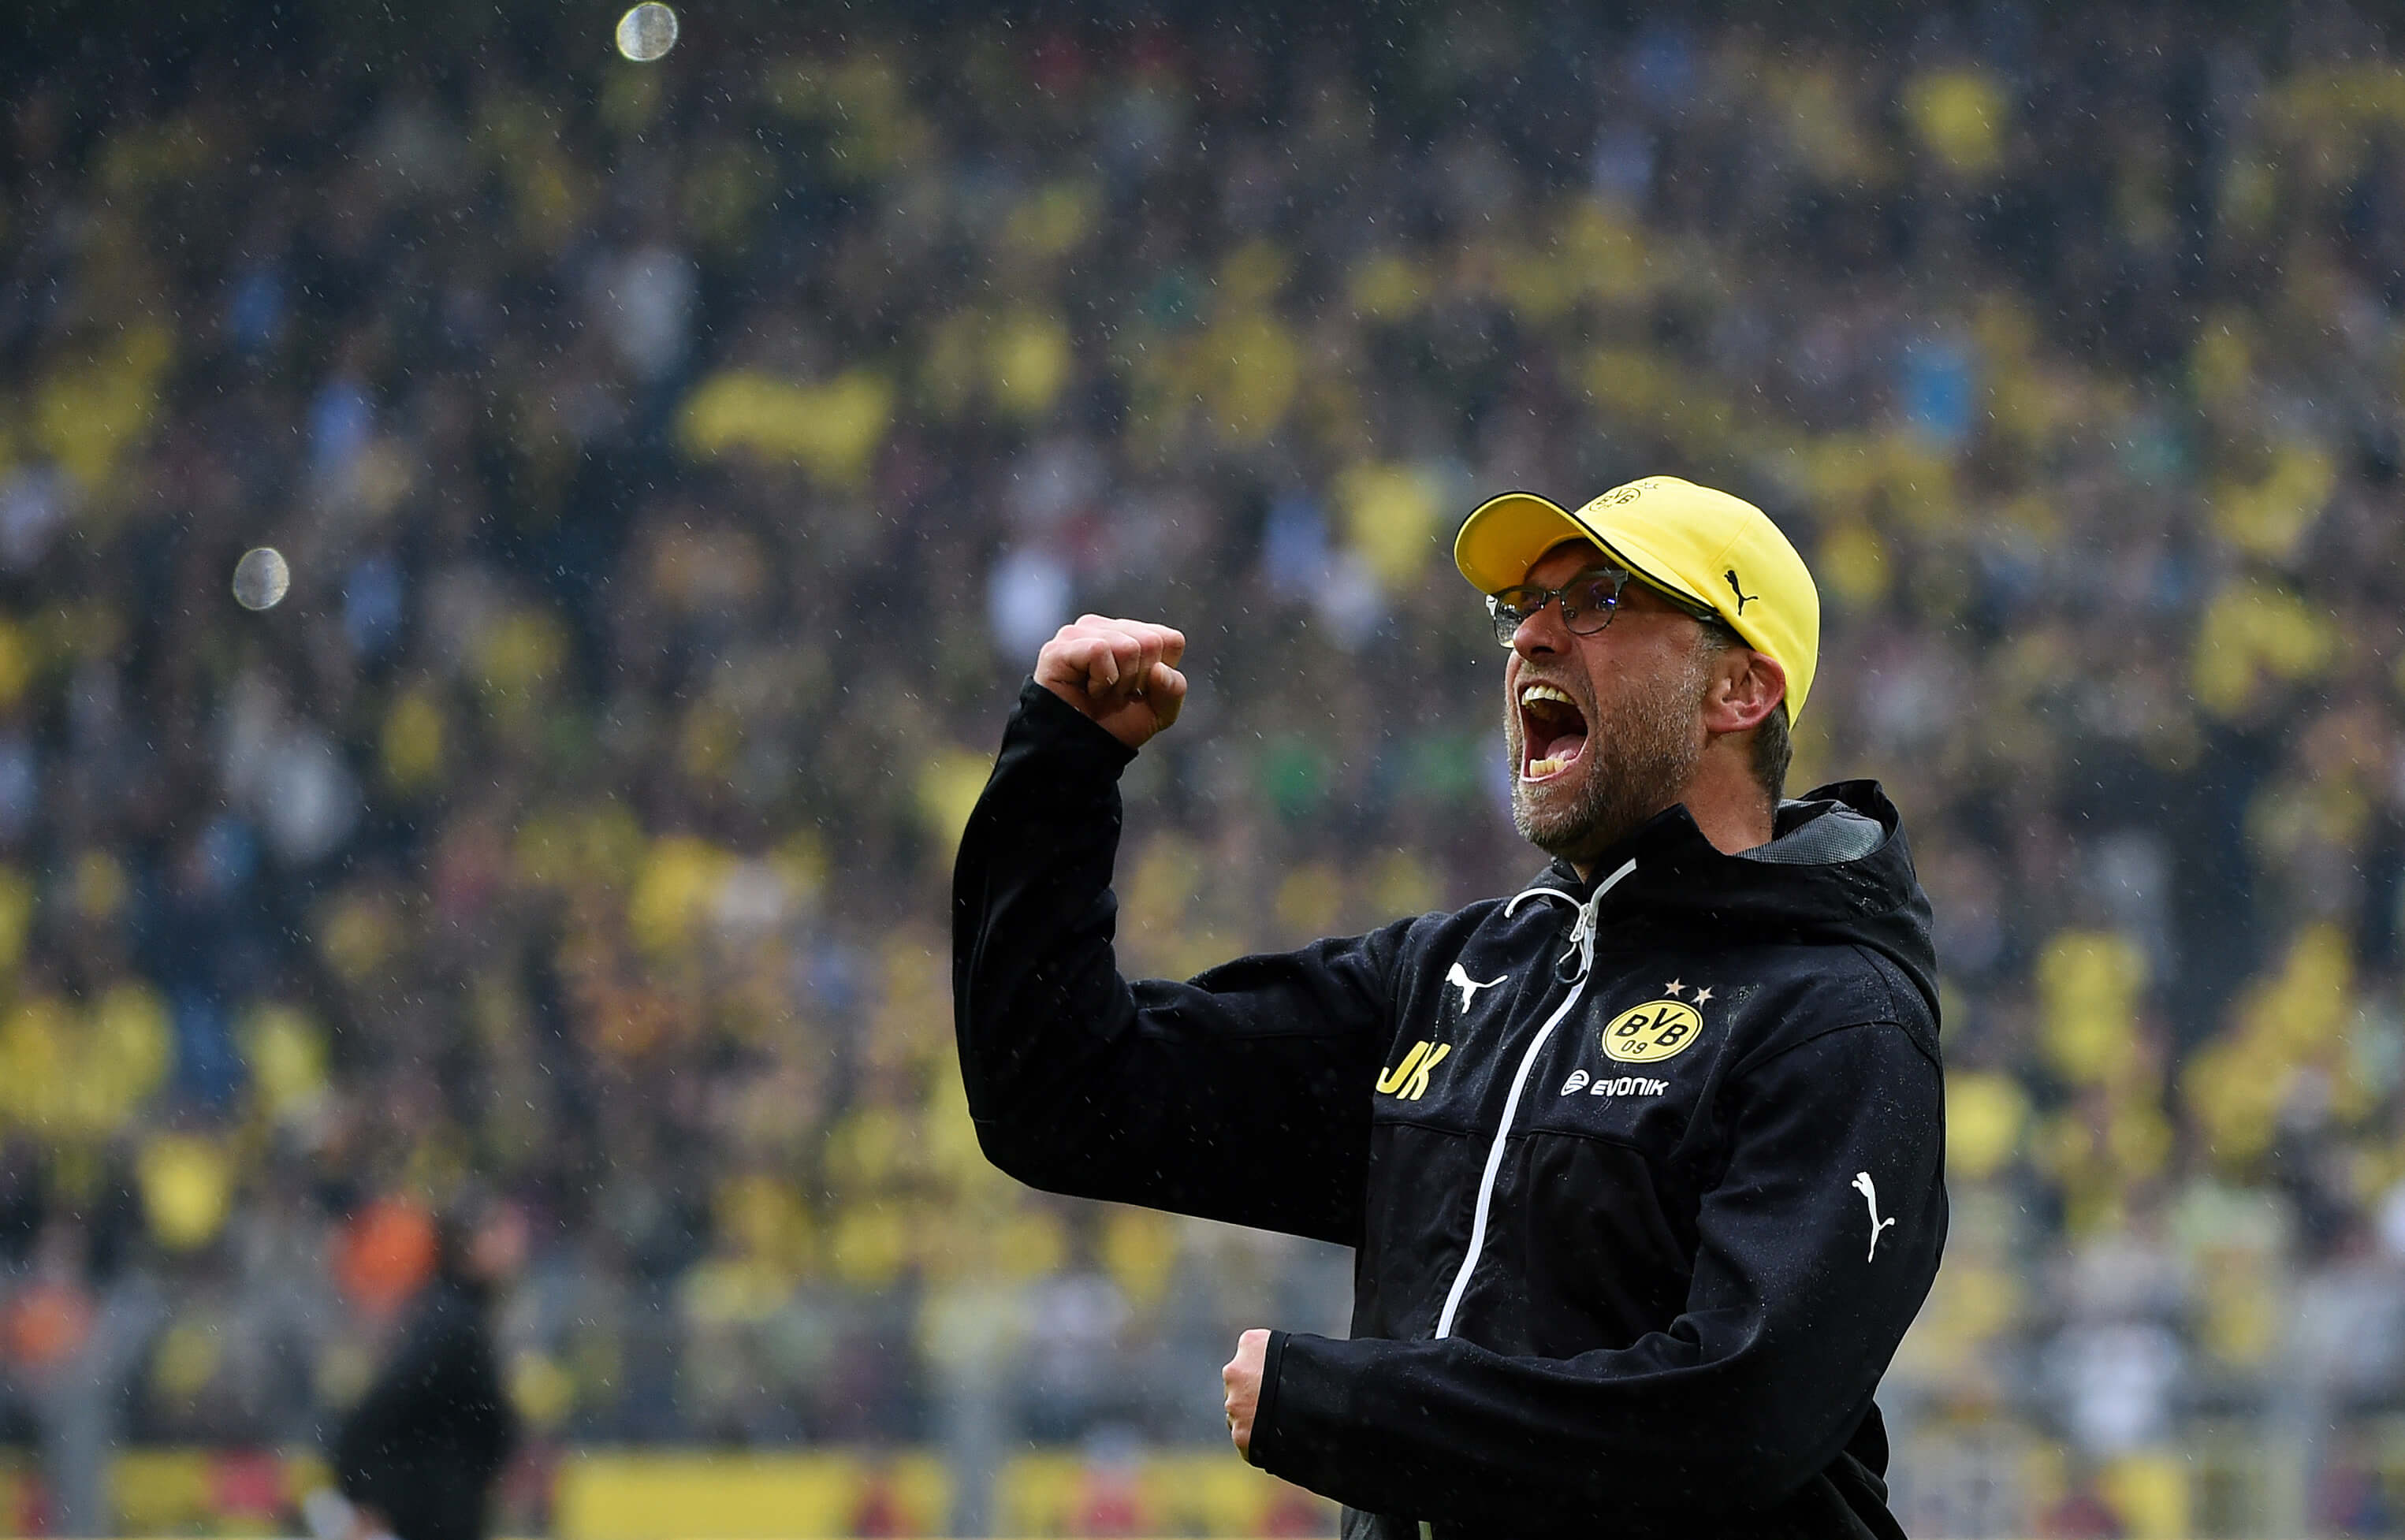 Jurgen Klopp's Gegenpressing style had its foundations in Dortmund youth (Image: AFP)